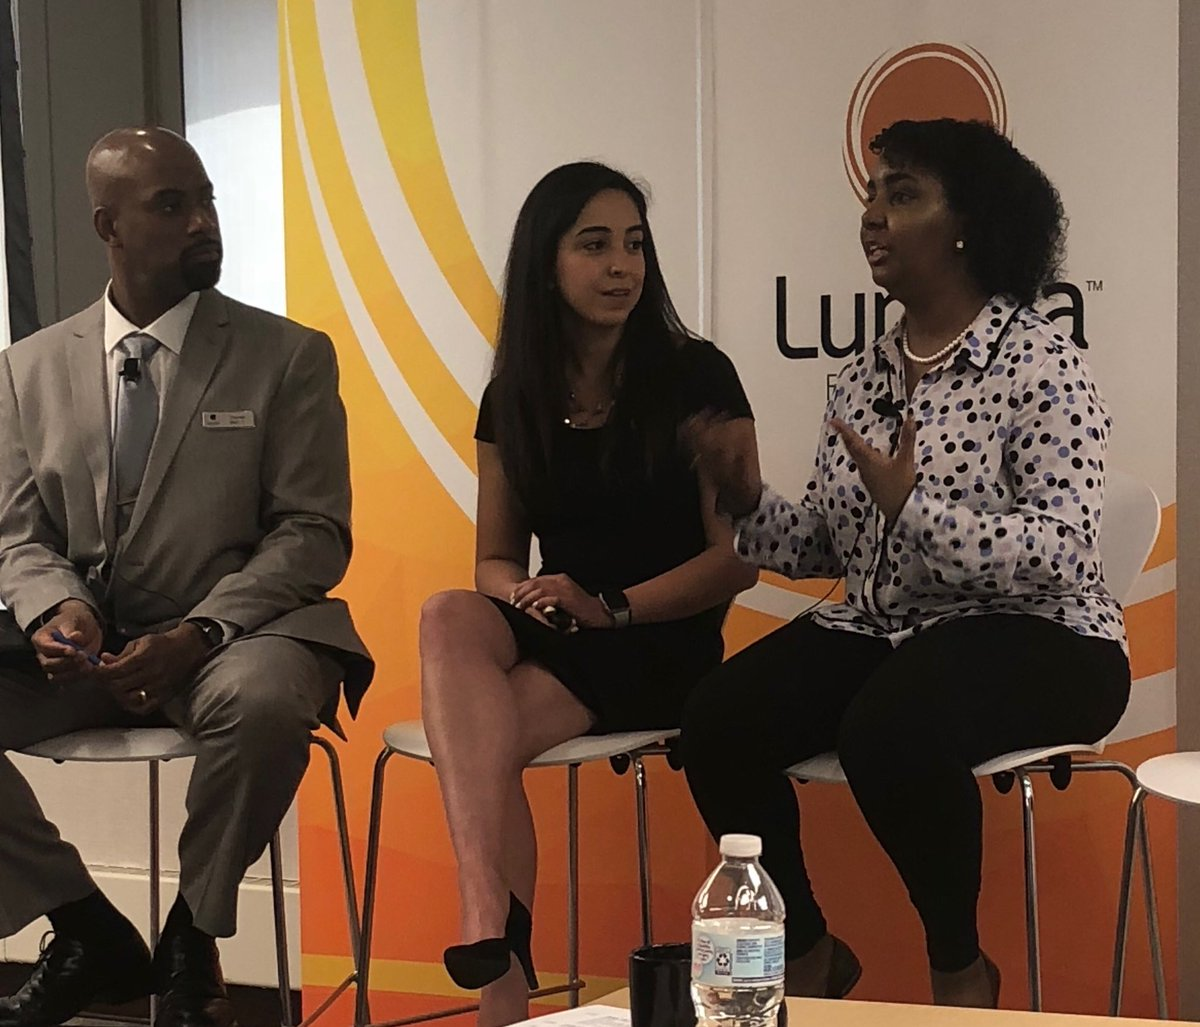 Critical we move beyond assumptions. Modeling the importance of student voice in policy.  #HigherEducation @LuminaFound #BeyondFinancialAid @prichardcom<br>http://pic.twitter.com/aM6k69d0vS